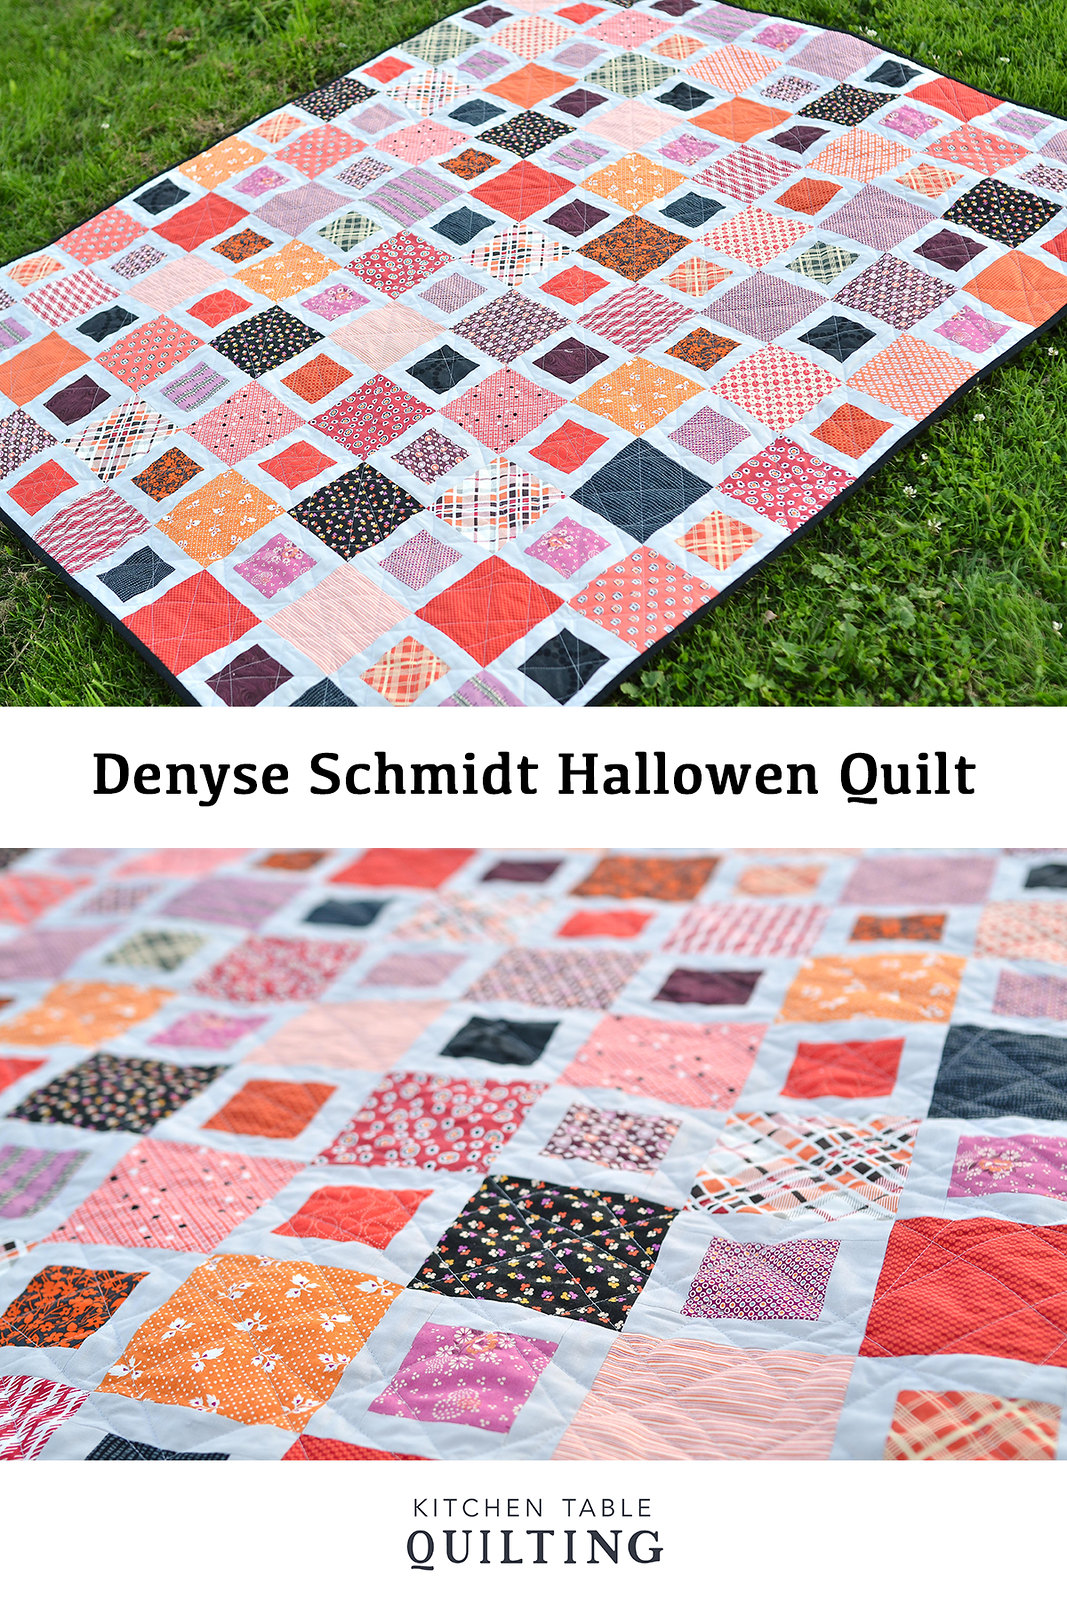 Denyse Schmidt Halloween Quilt - Kitchen Table Quilting #quilt